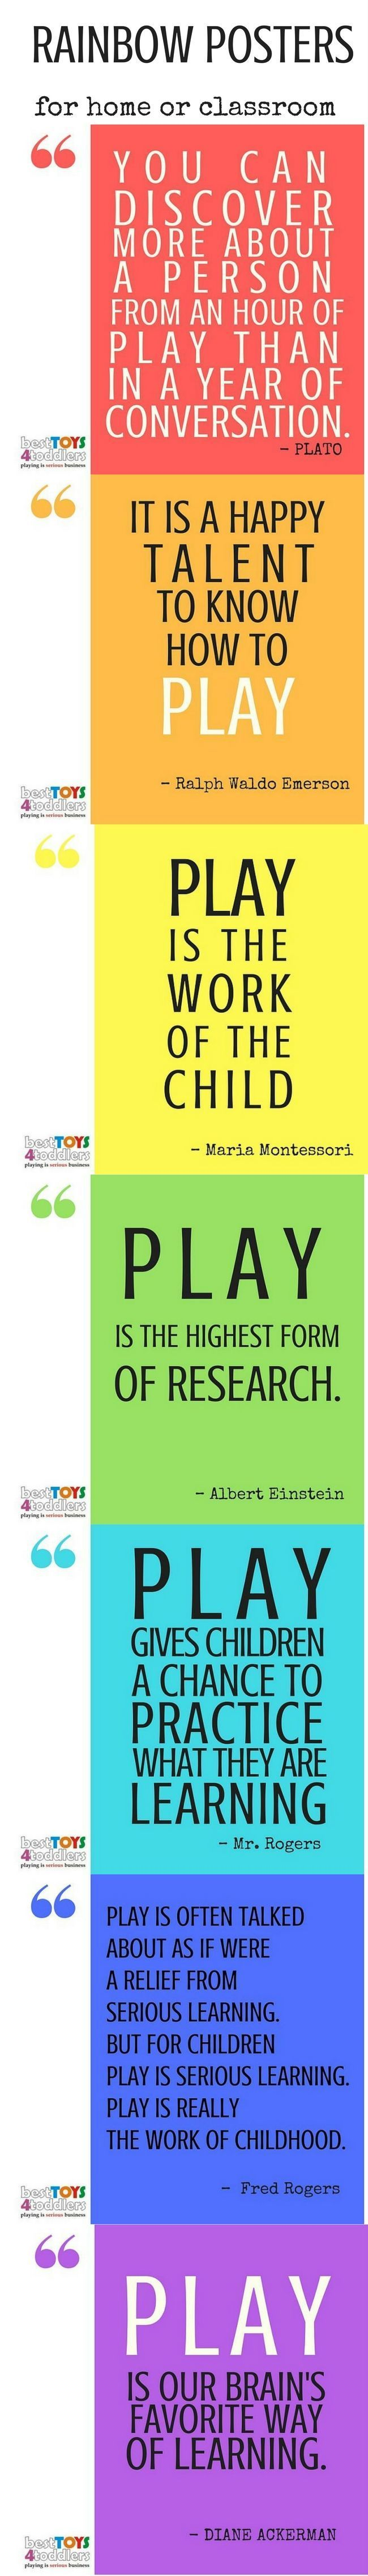 the importance of play in early Play sets the tone for how your child learns and socializes learn about 11 types of play and why they are important for early childhood development.